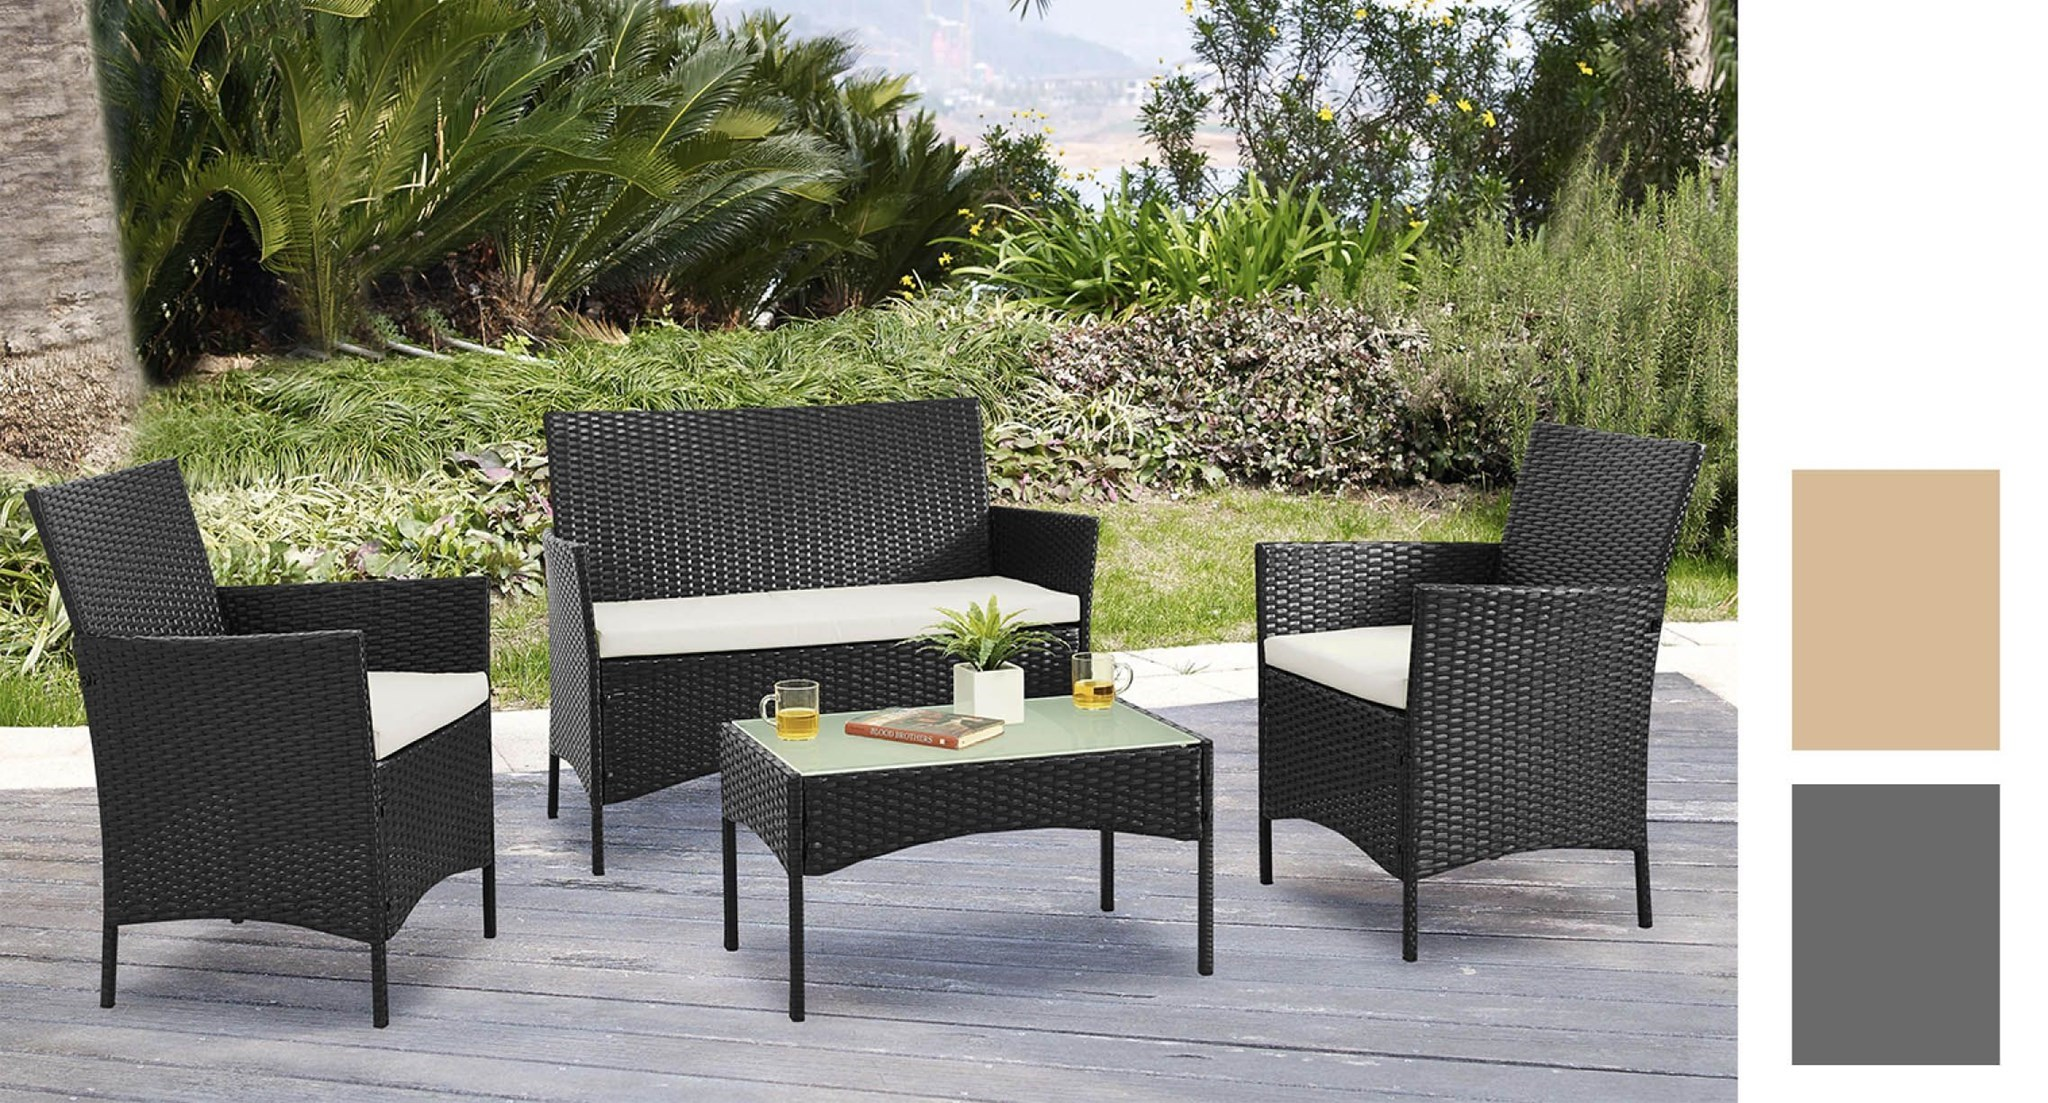 Outdoor Furniture - Mobilier De Jardin - Marimac Group